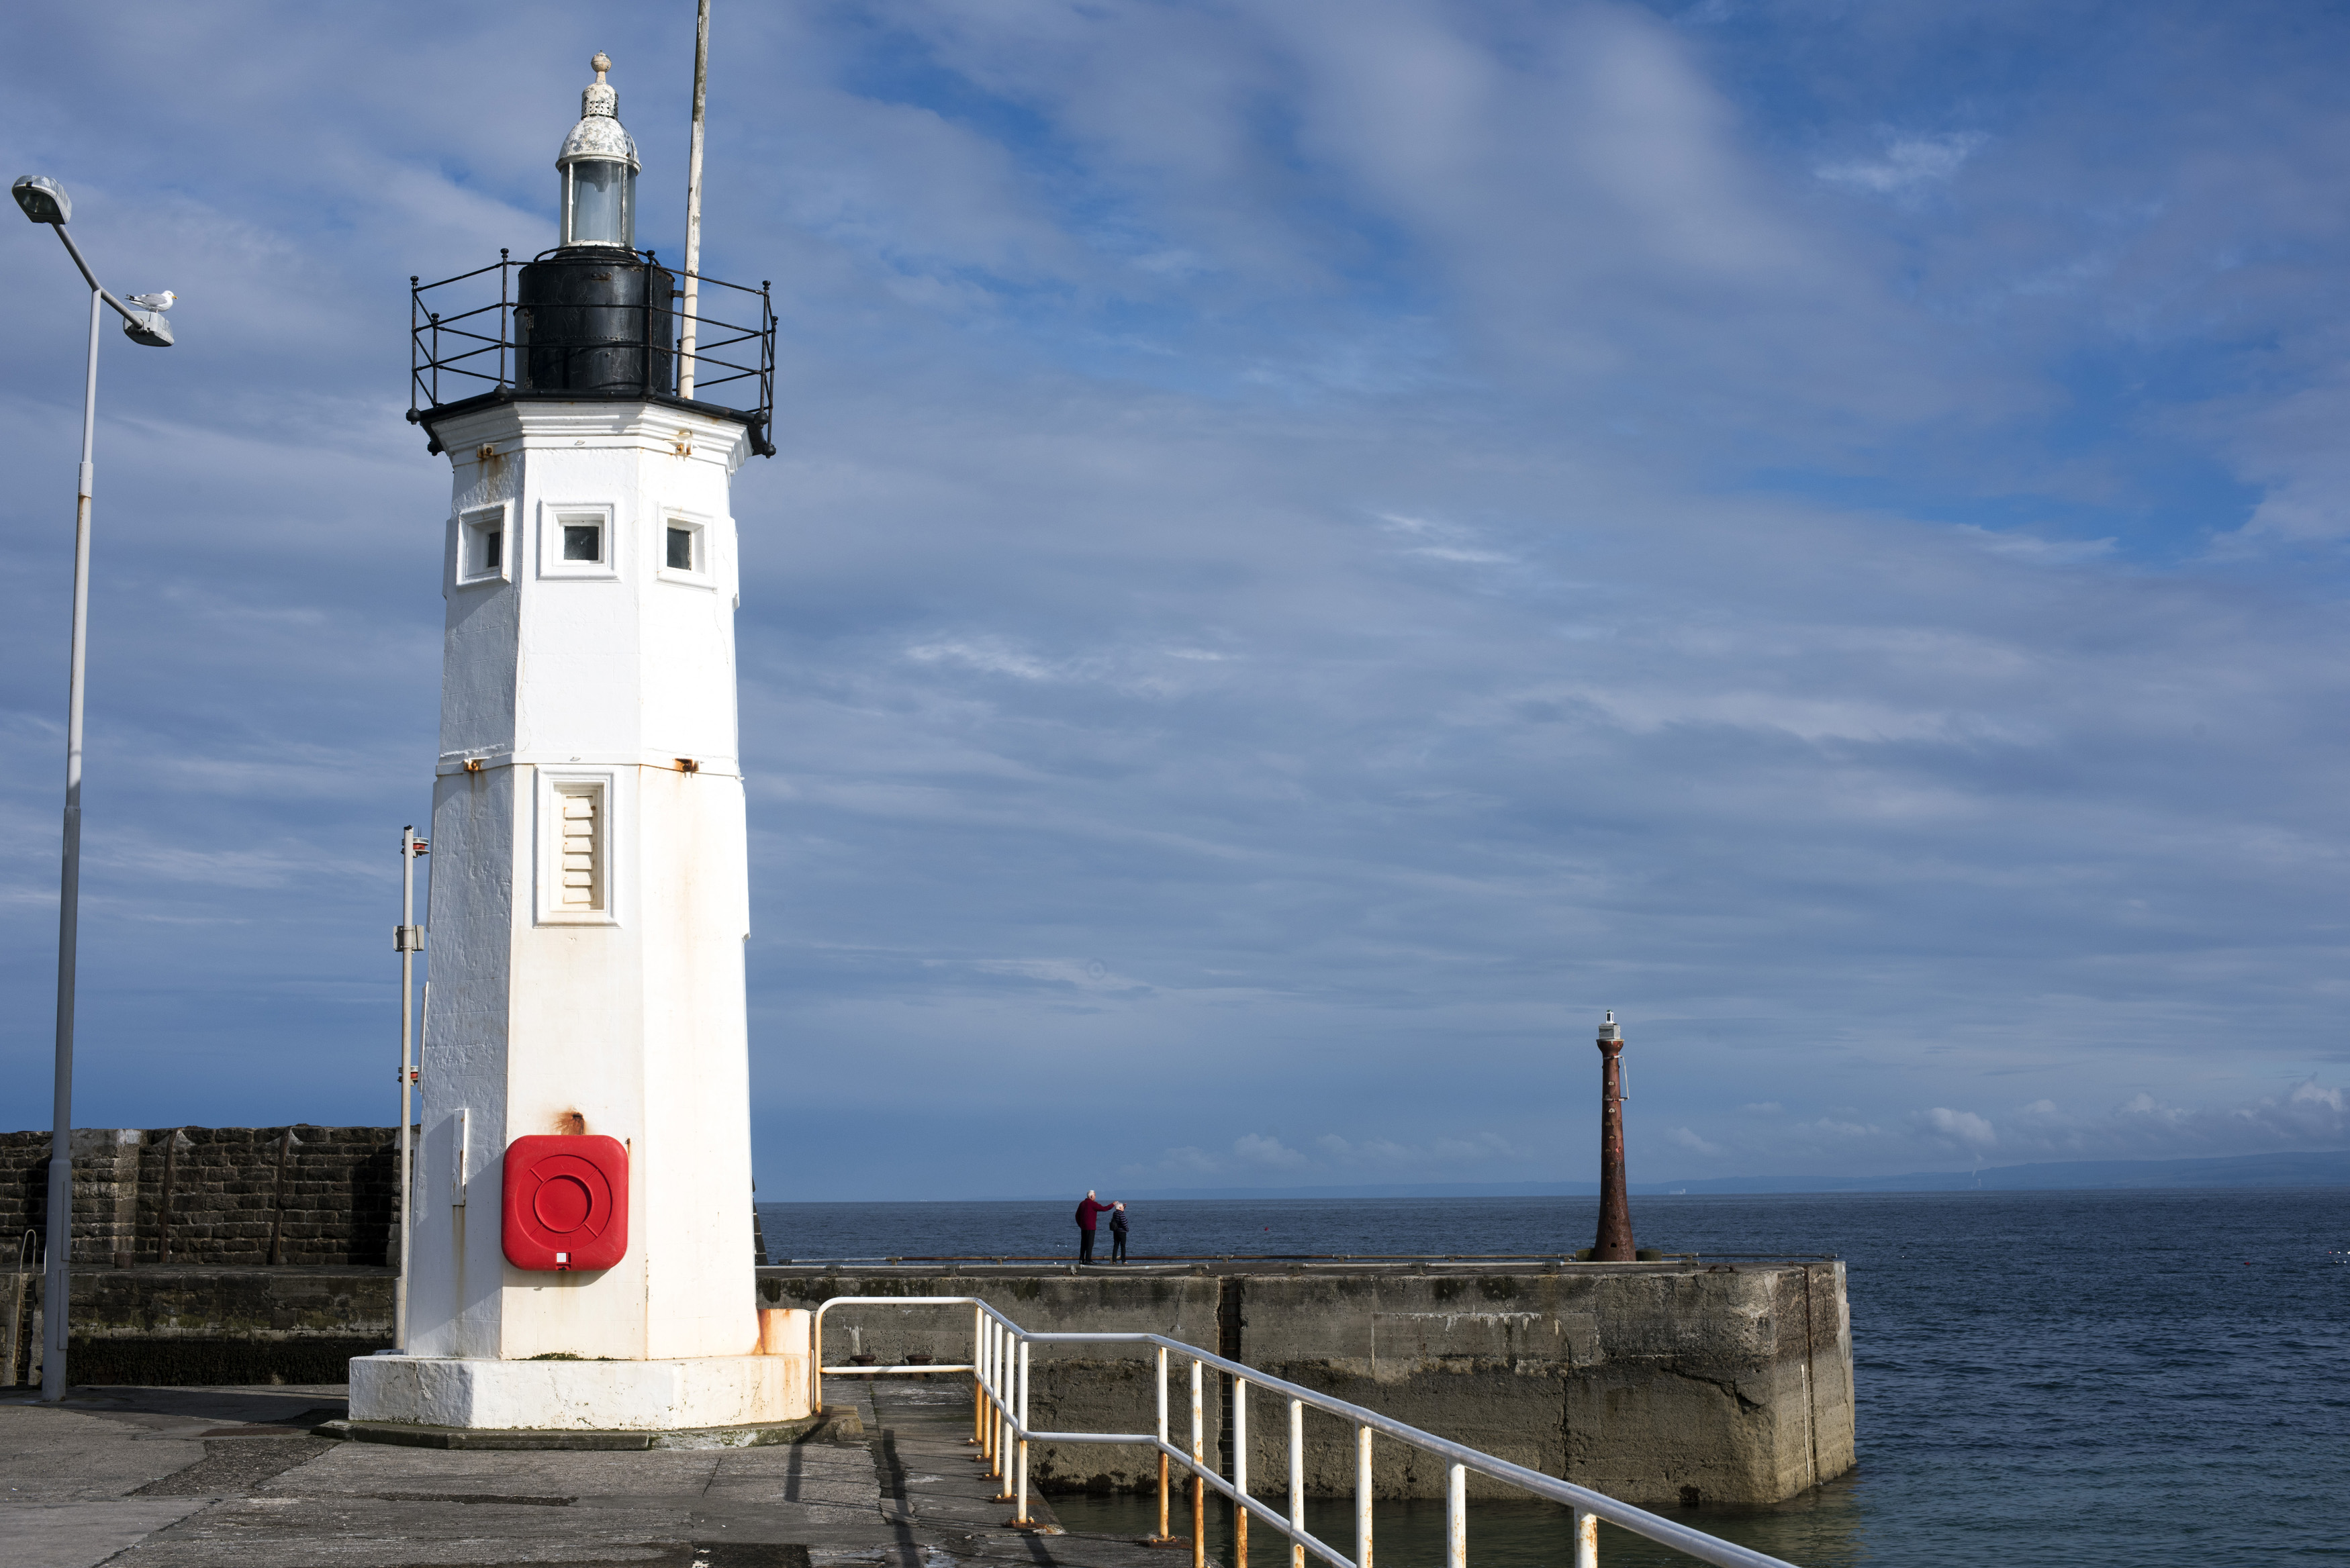 Picturesque white lighthouse, Anstruther, Scotland on the seawall at the entrance to the harbour with copy space on a blue sky